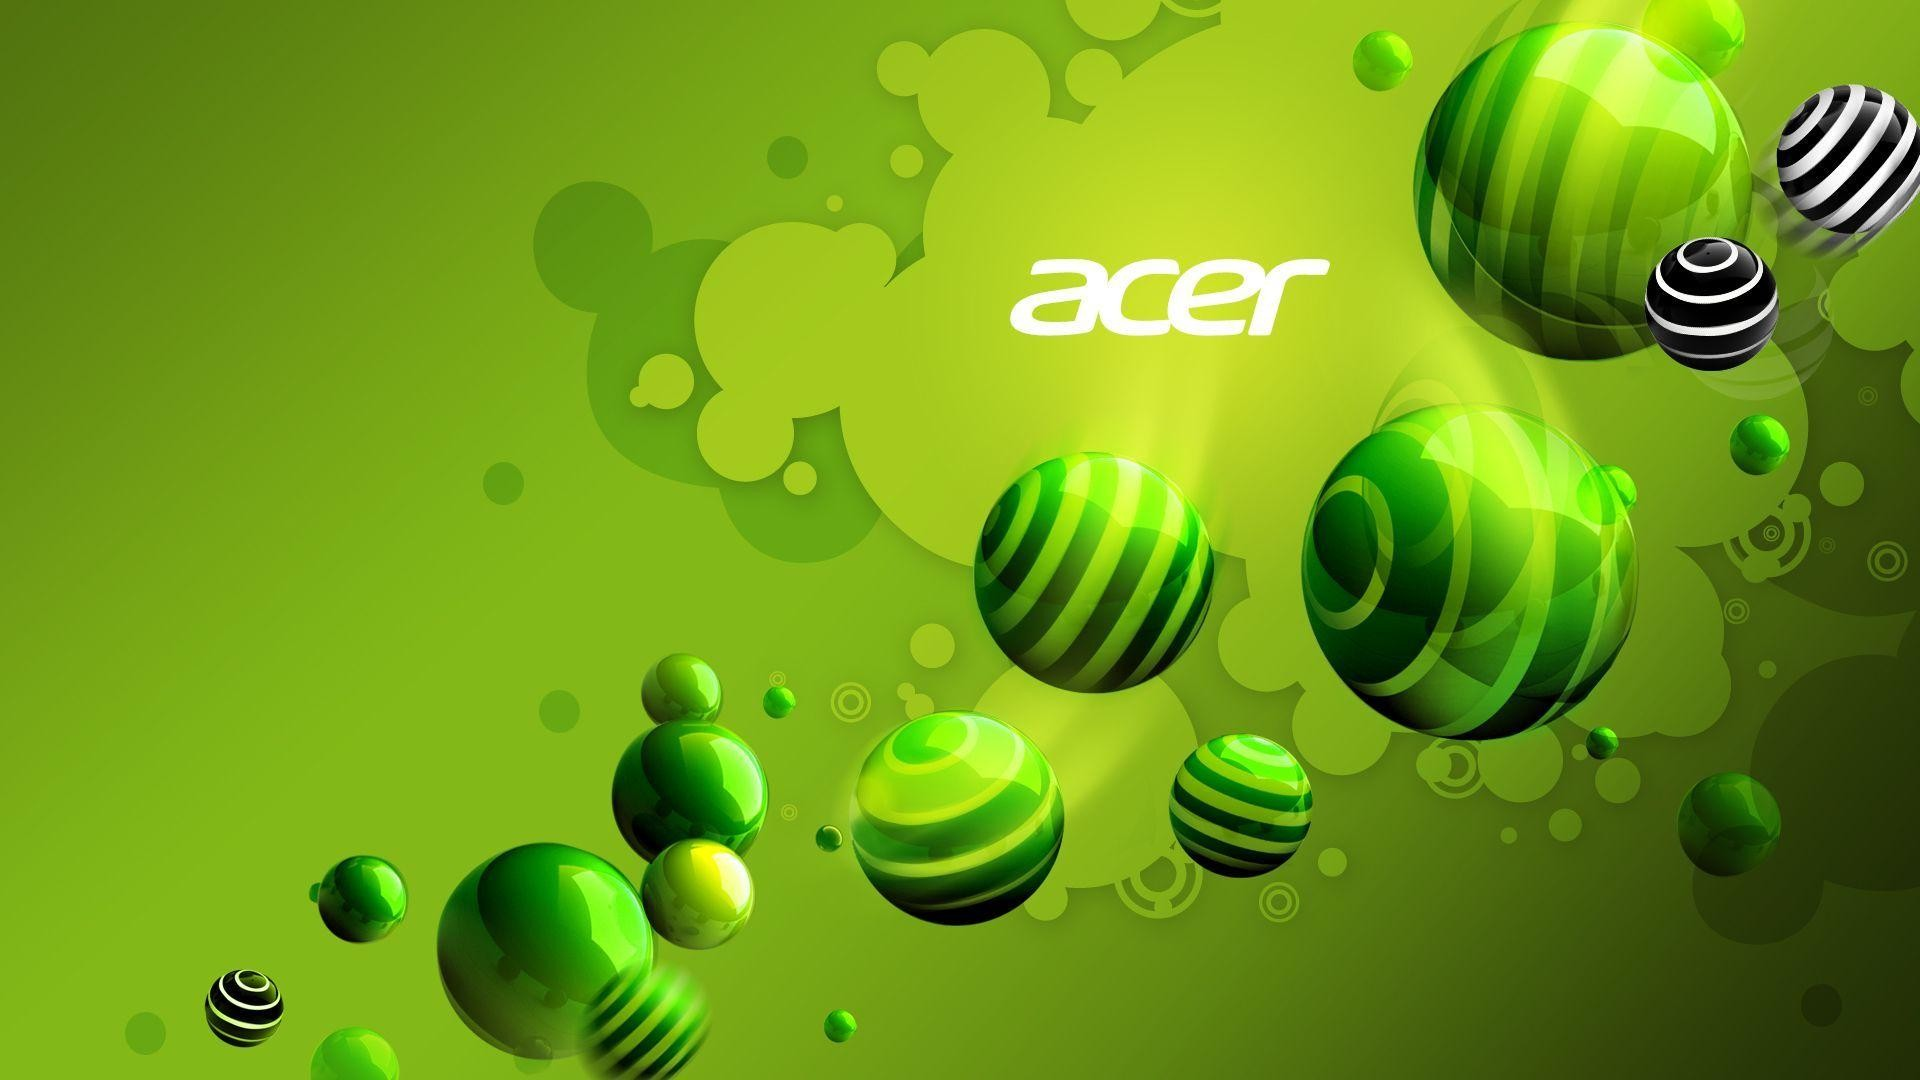 1920x1080 Acer Background 01 - Other & Technology Background Wallpapers on .